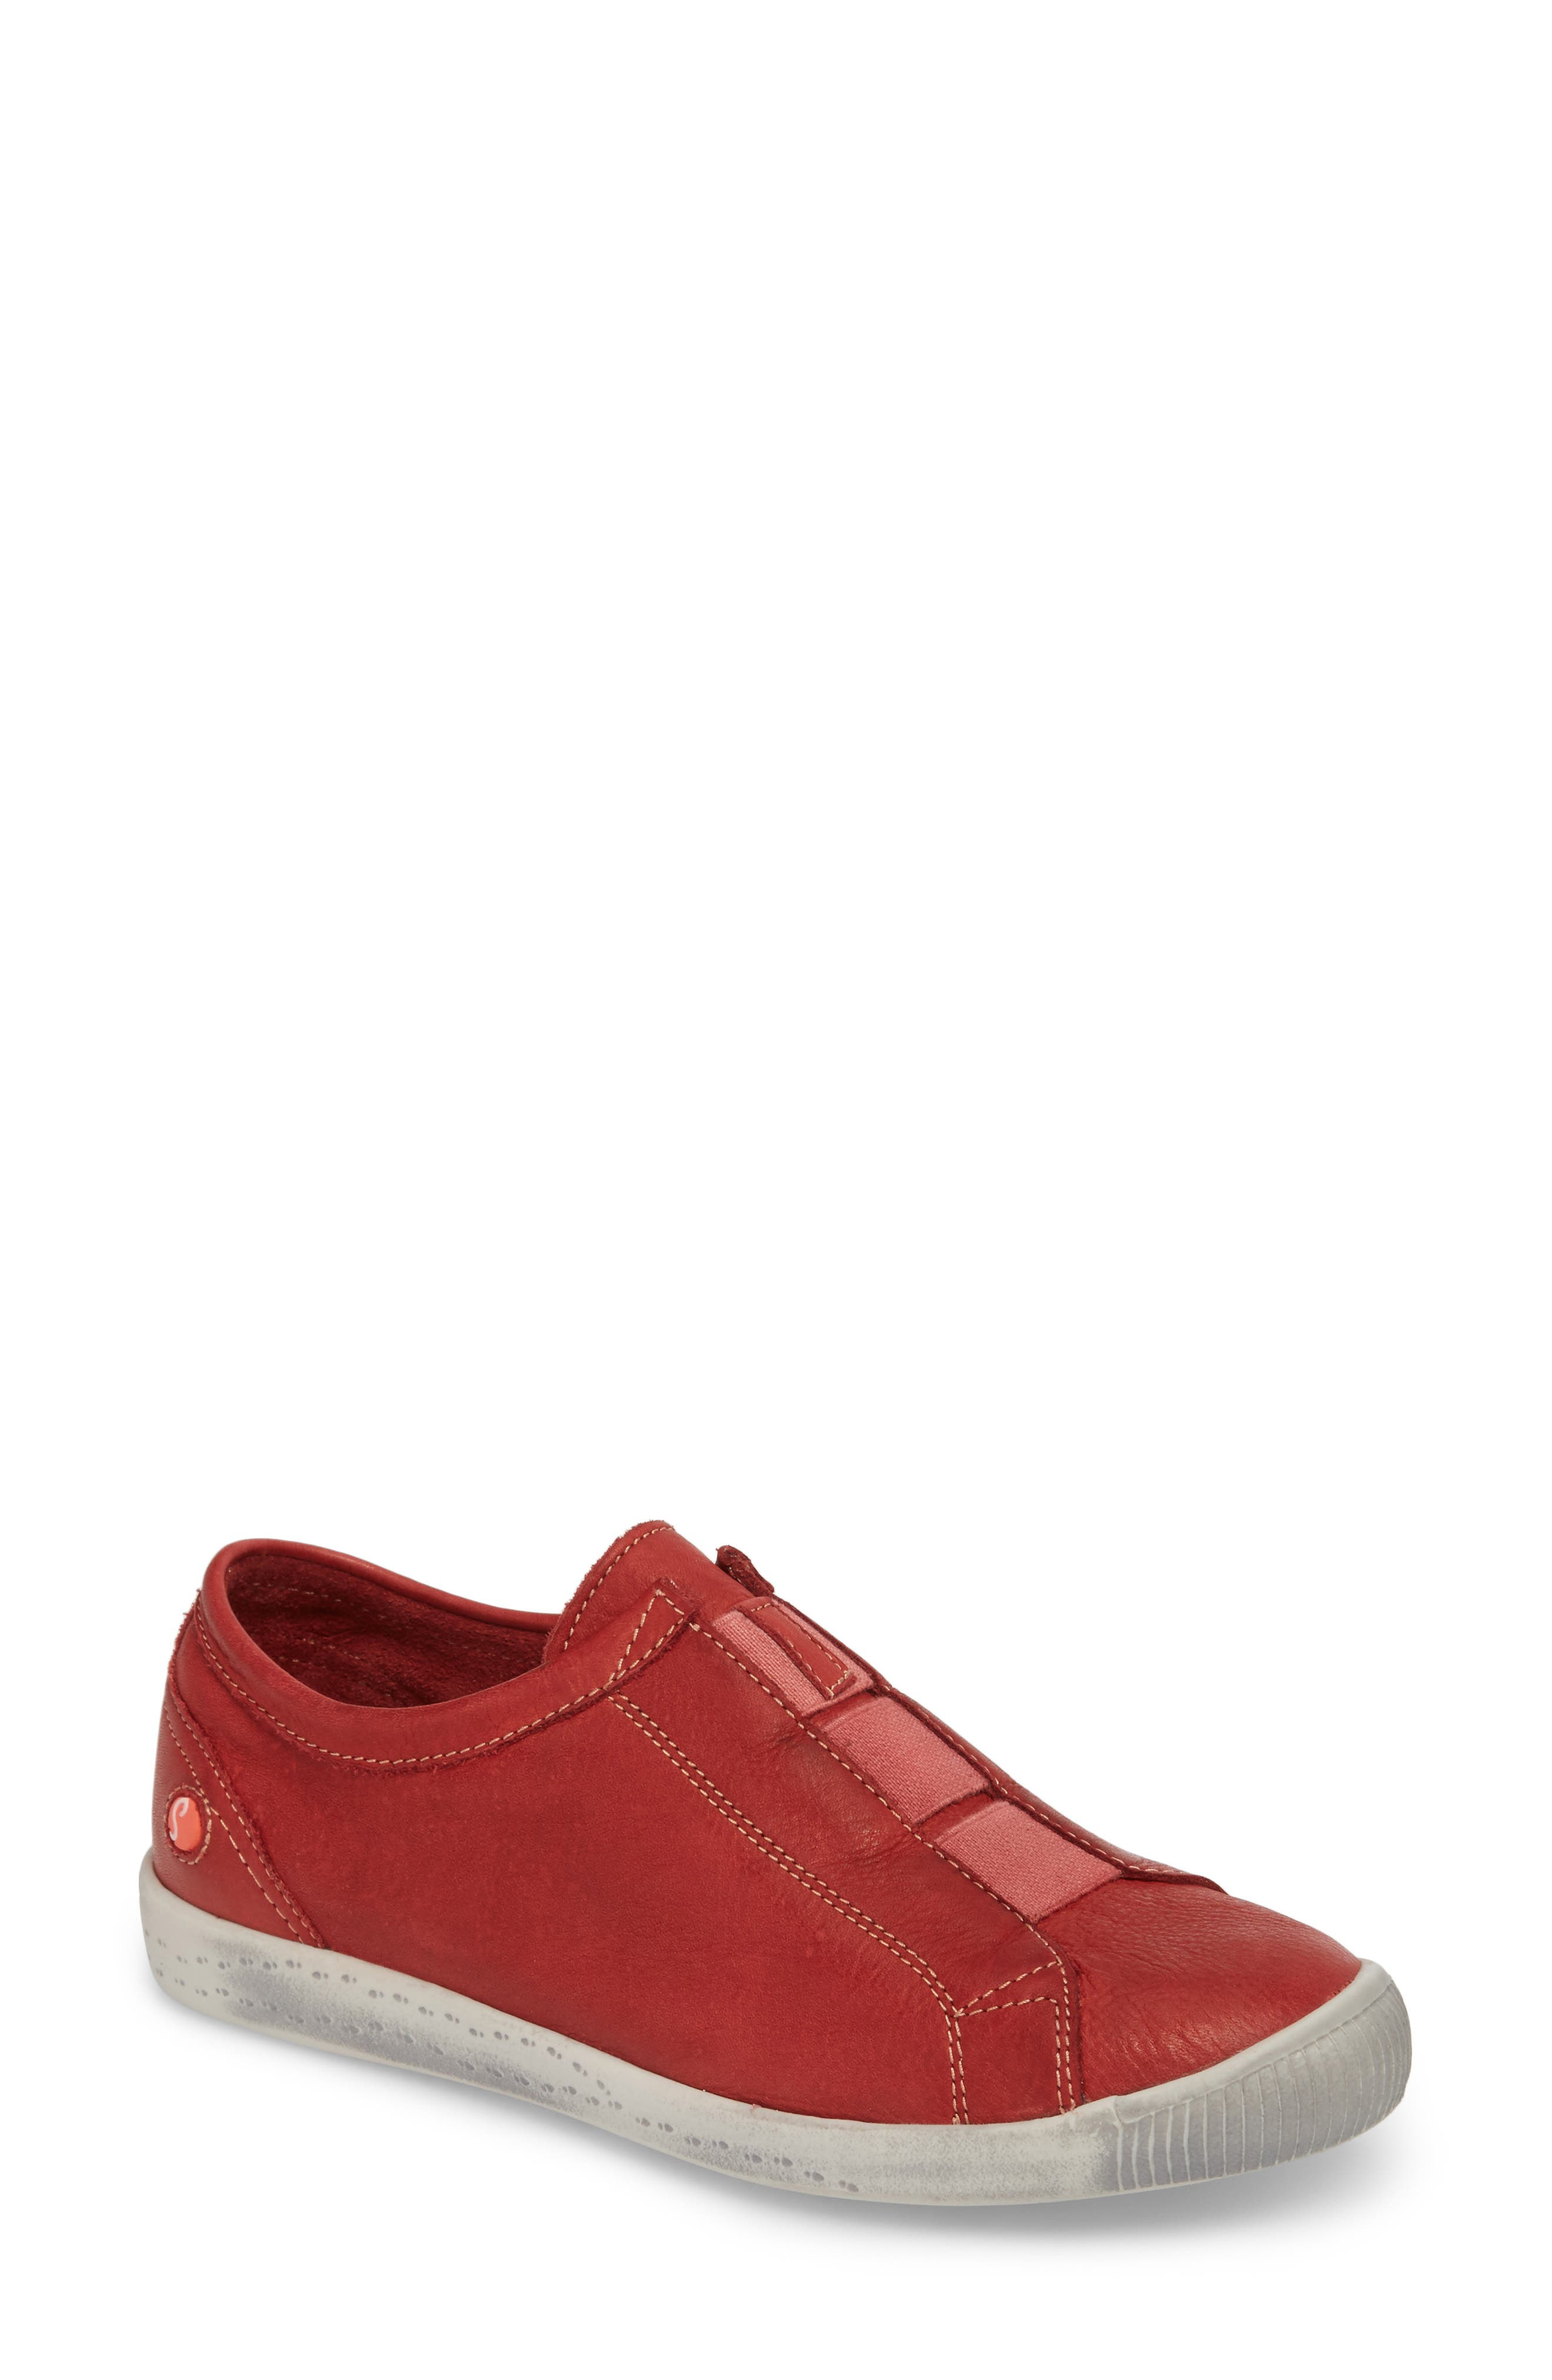 INI453SOF Slip-On Sneaker,                         Main,                         color, Red Leather